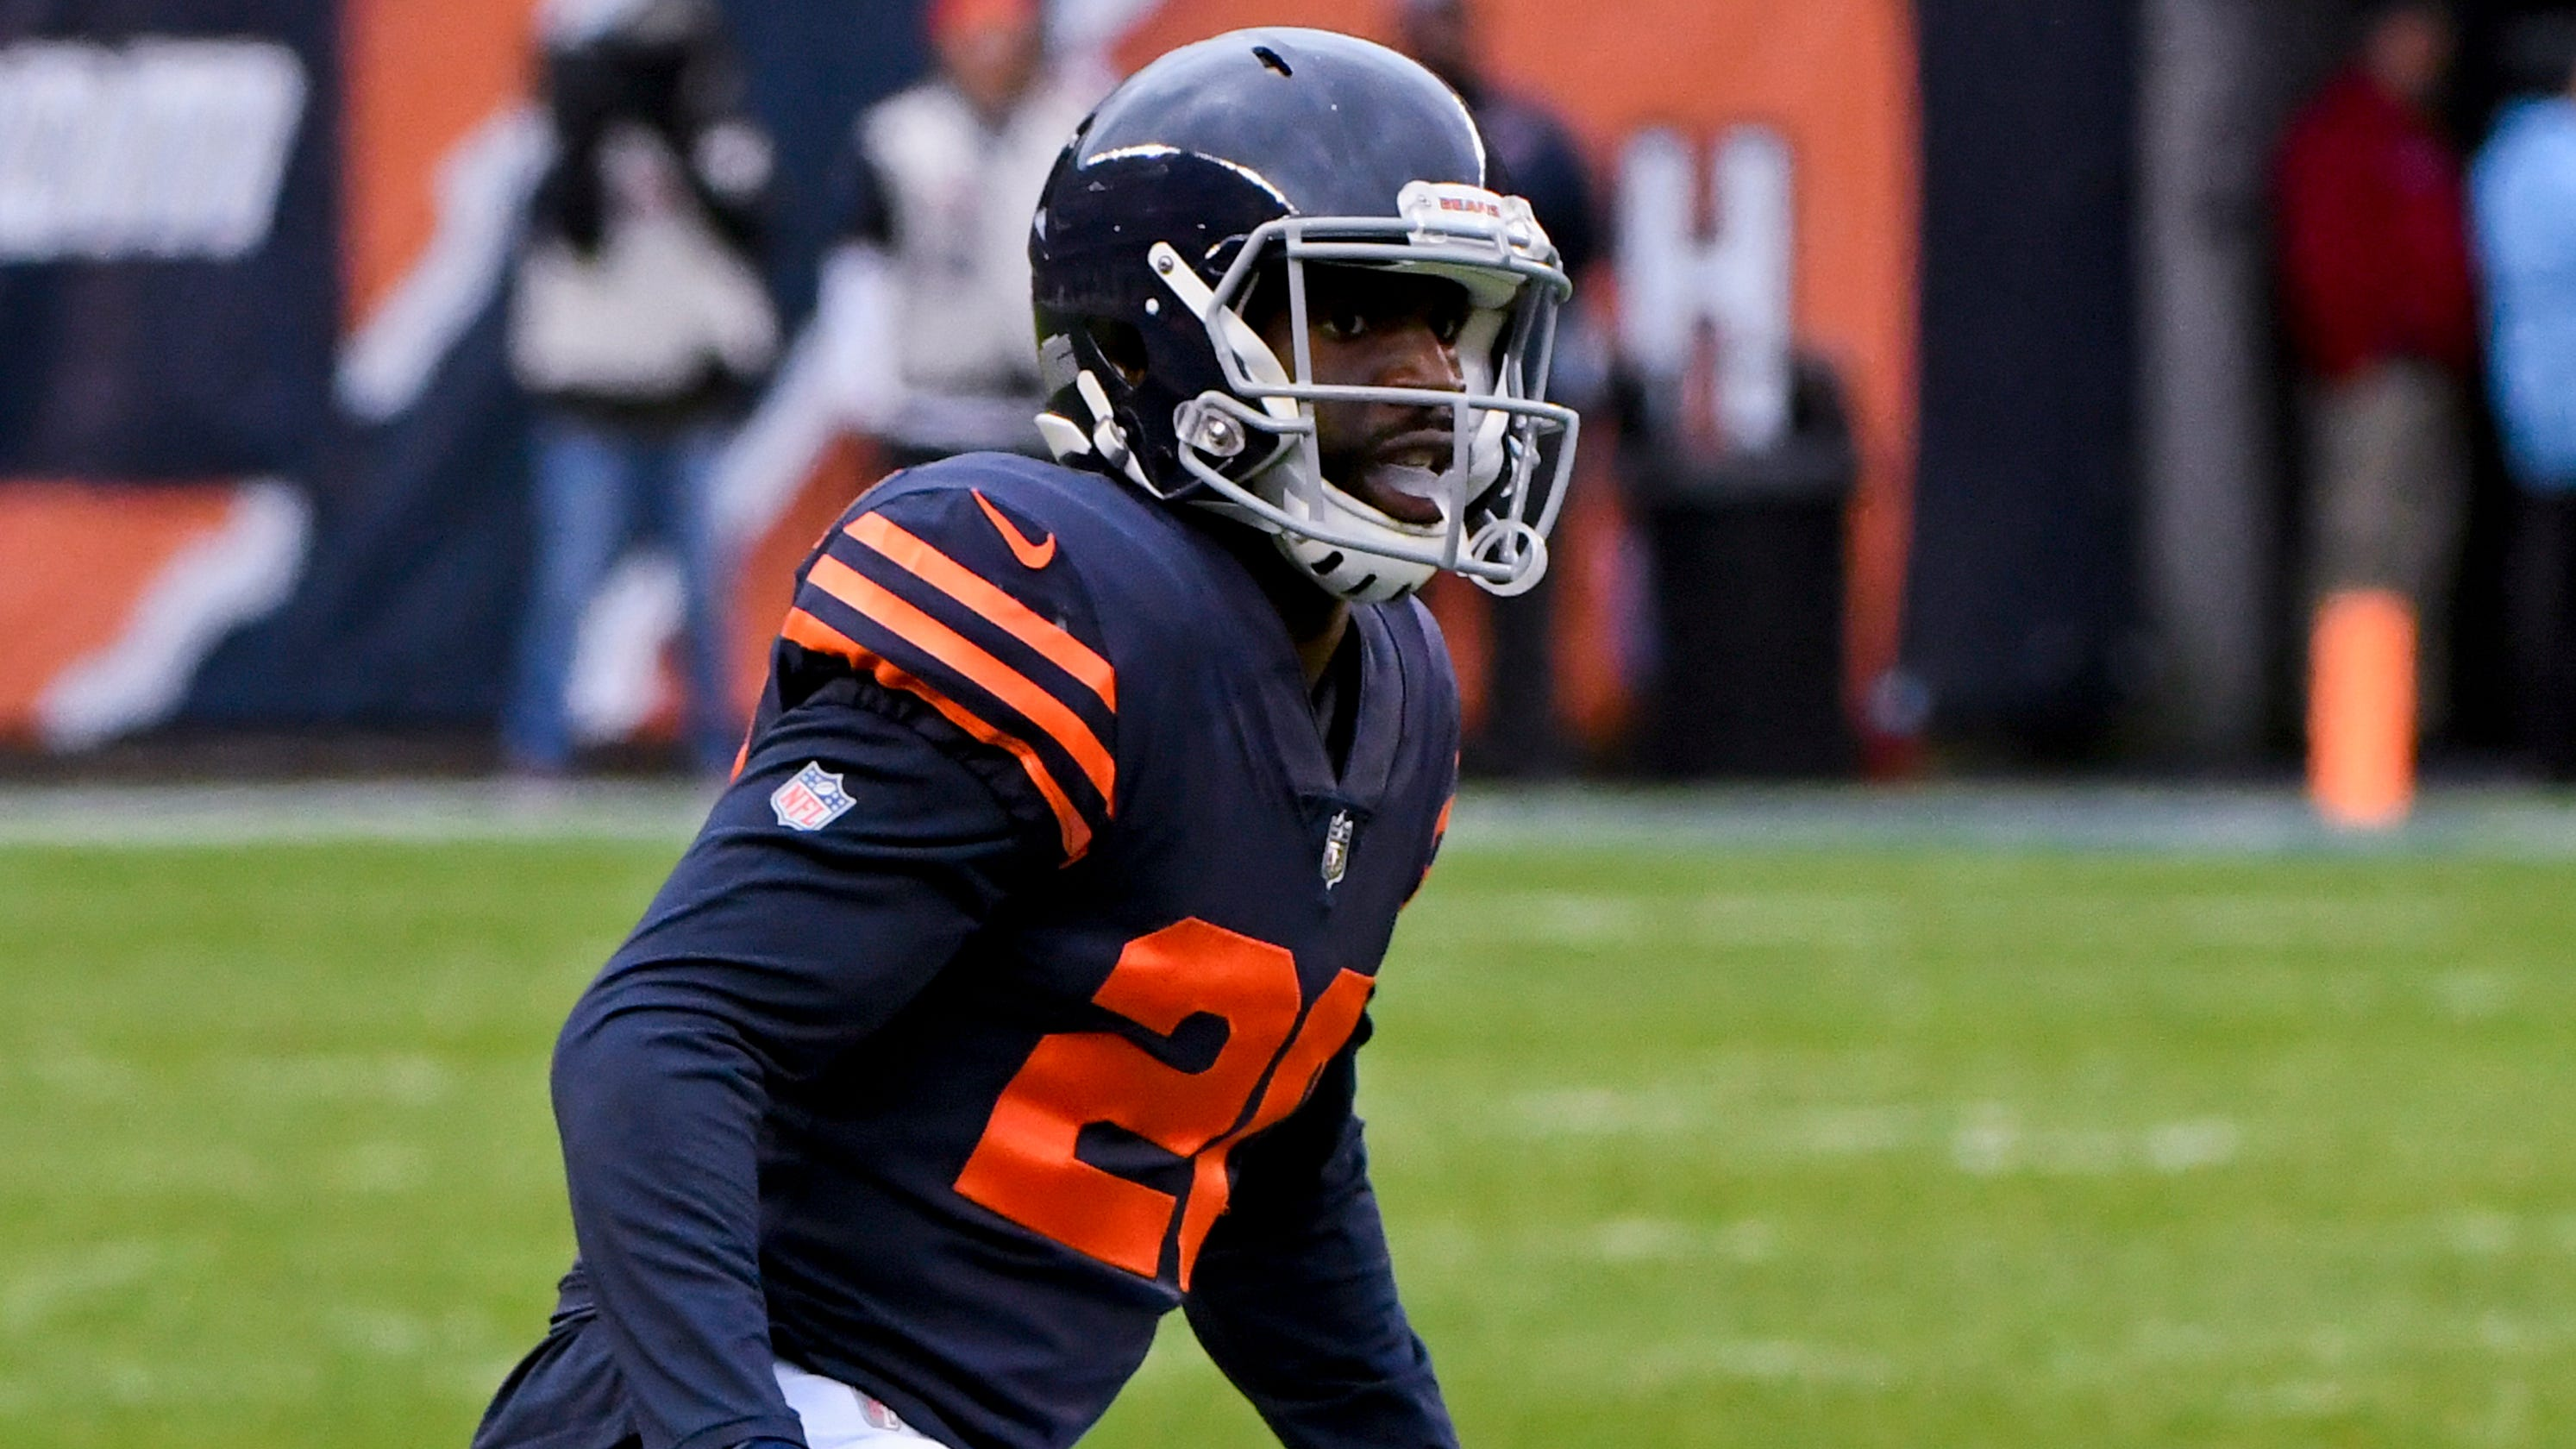 Chicago Bears  Prince Amukamara plays with name misspelled on jersey 2febc284a